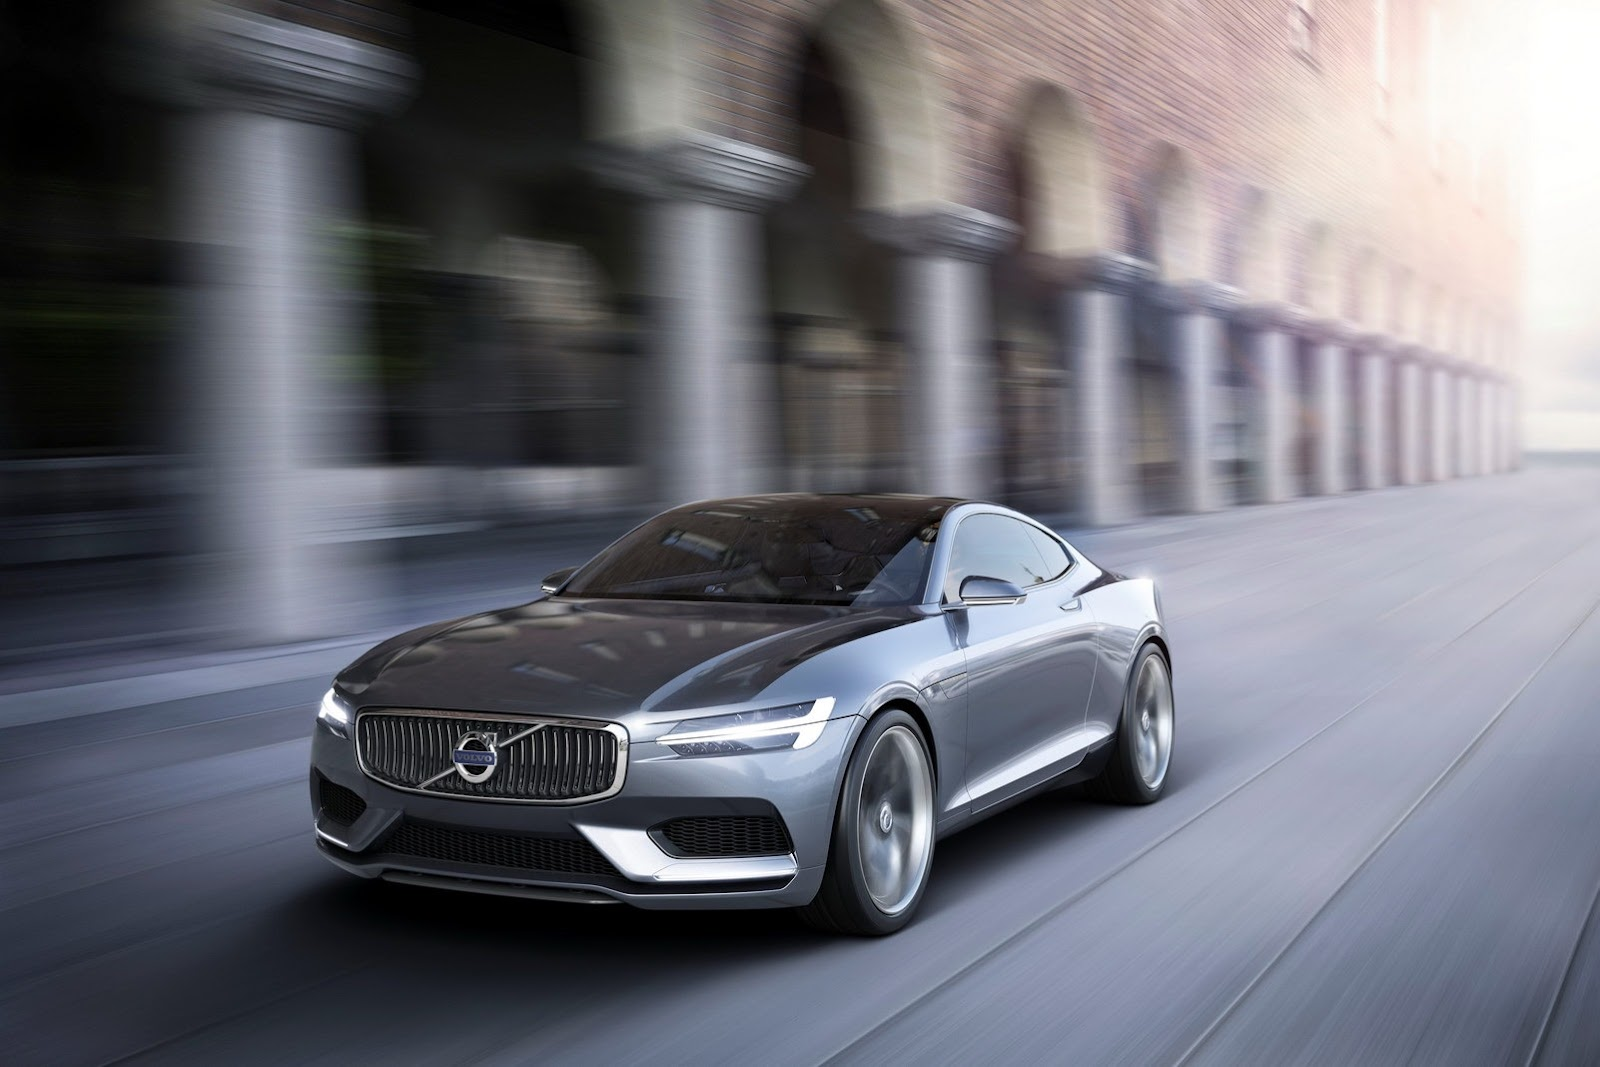 Volvo-Concept-Coupe-4%25255B2%25255D.jpg